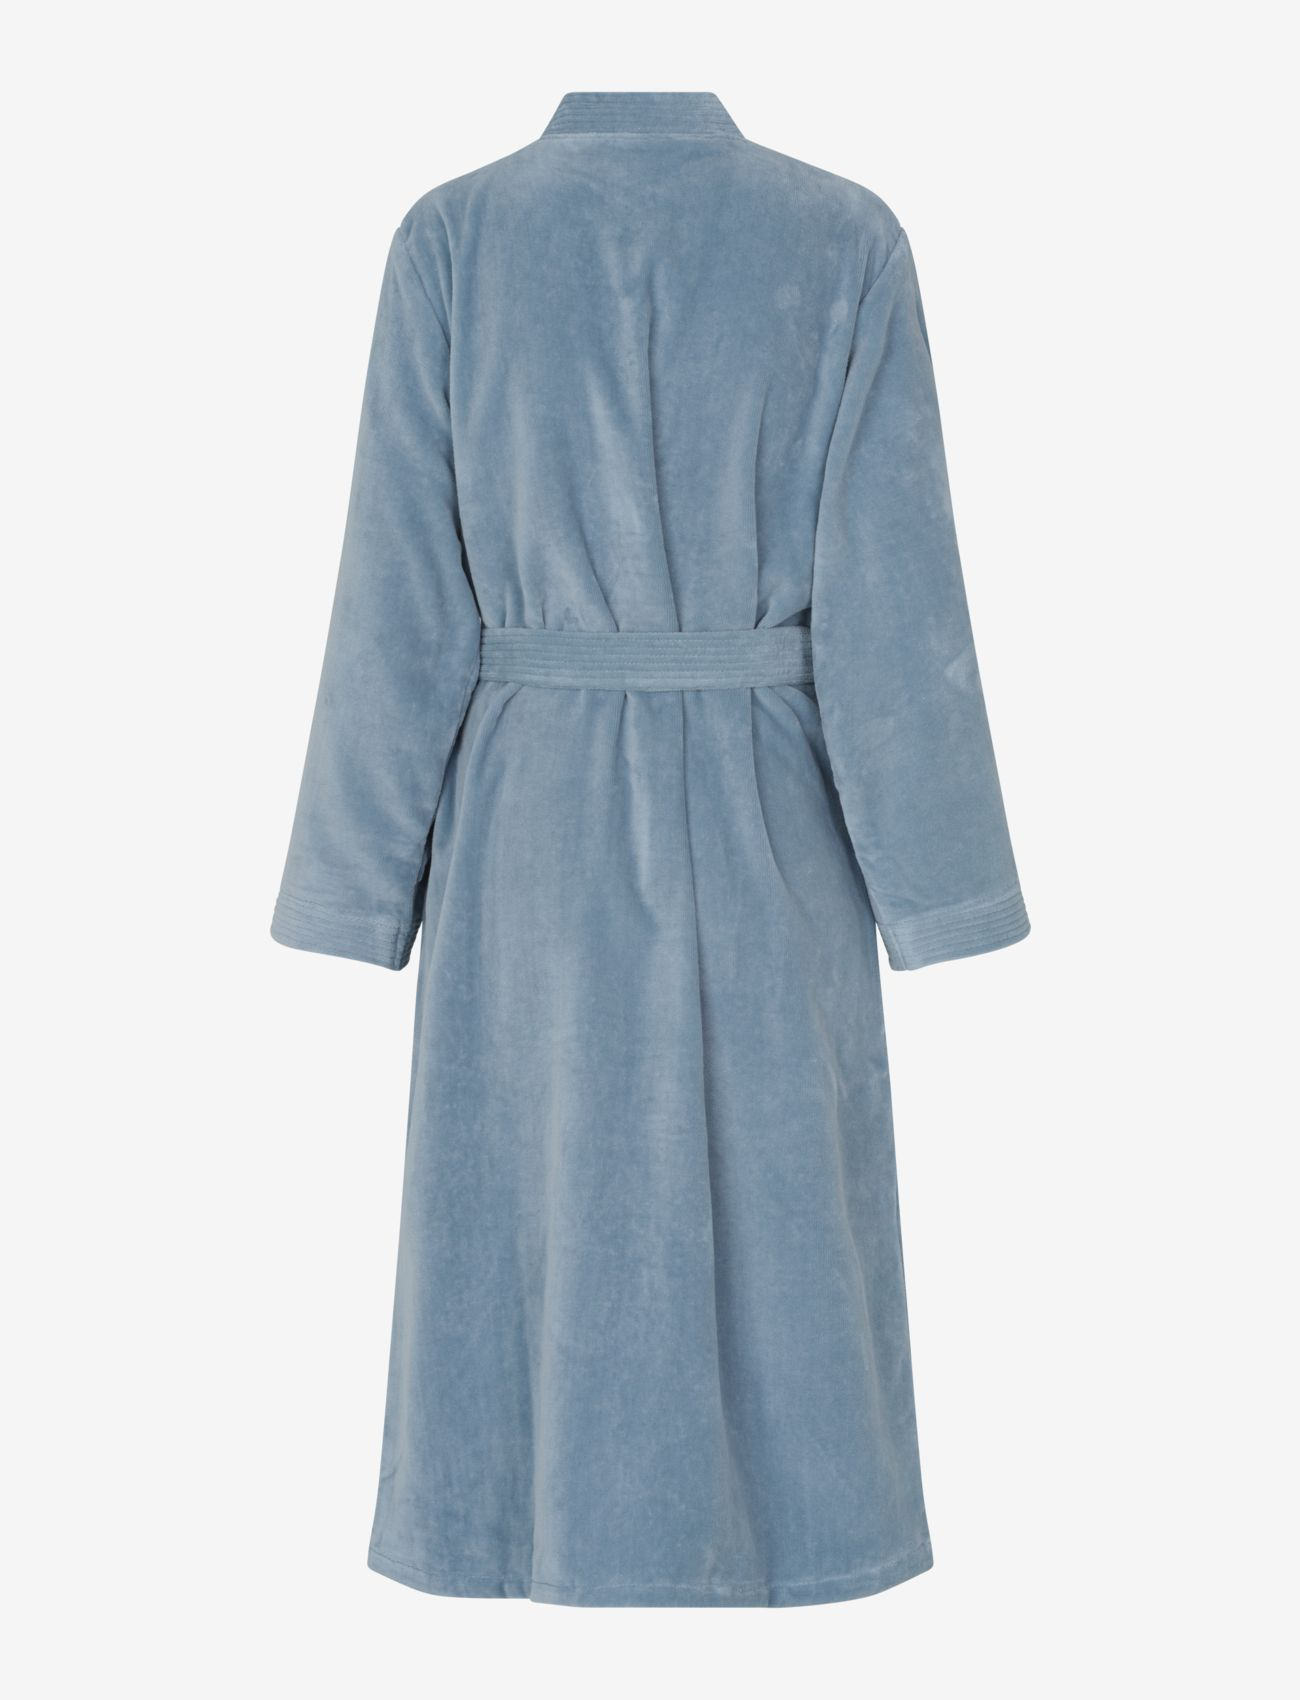 Rosemunde - robe - pegnoirs - dusty blue - 1